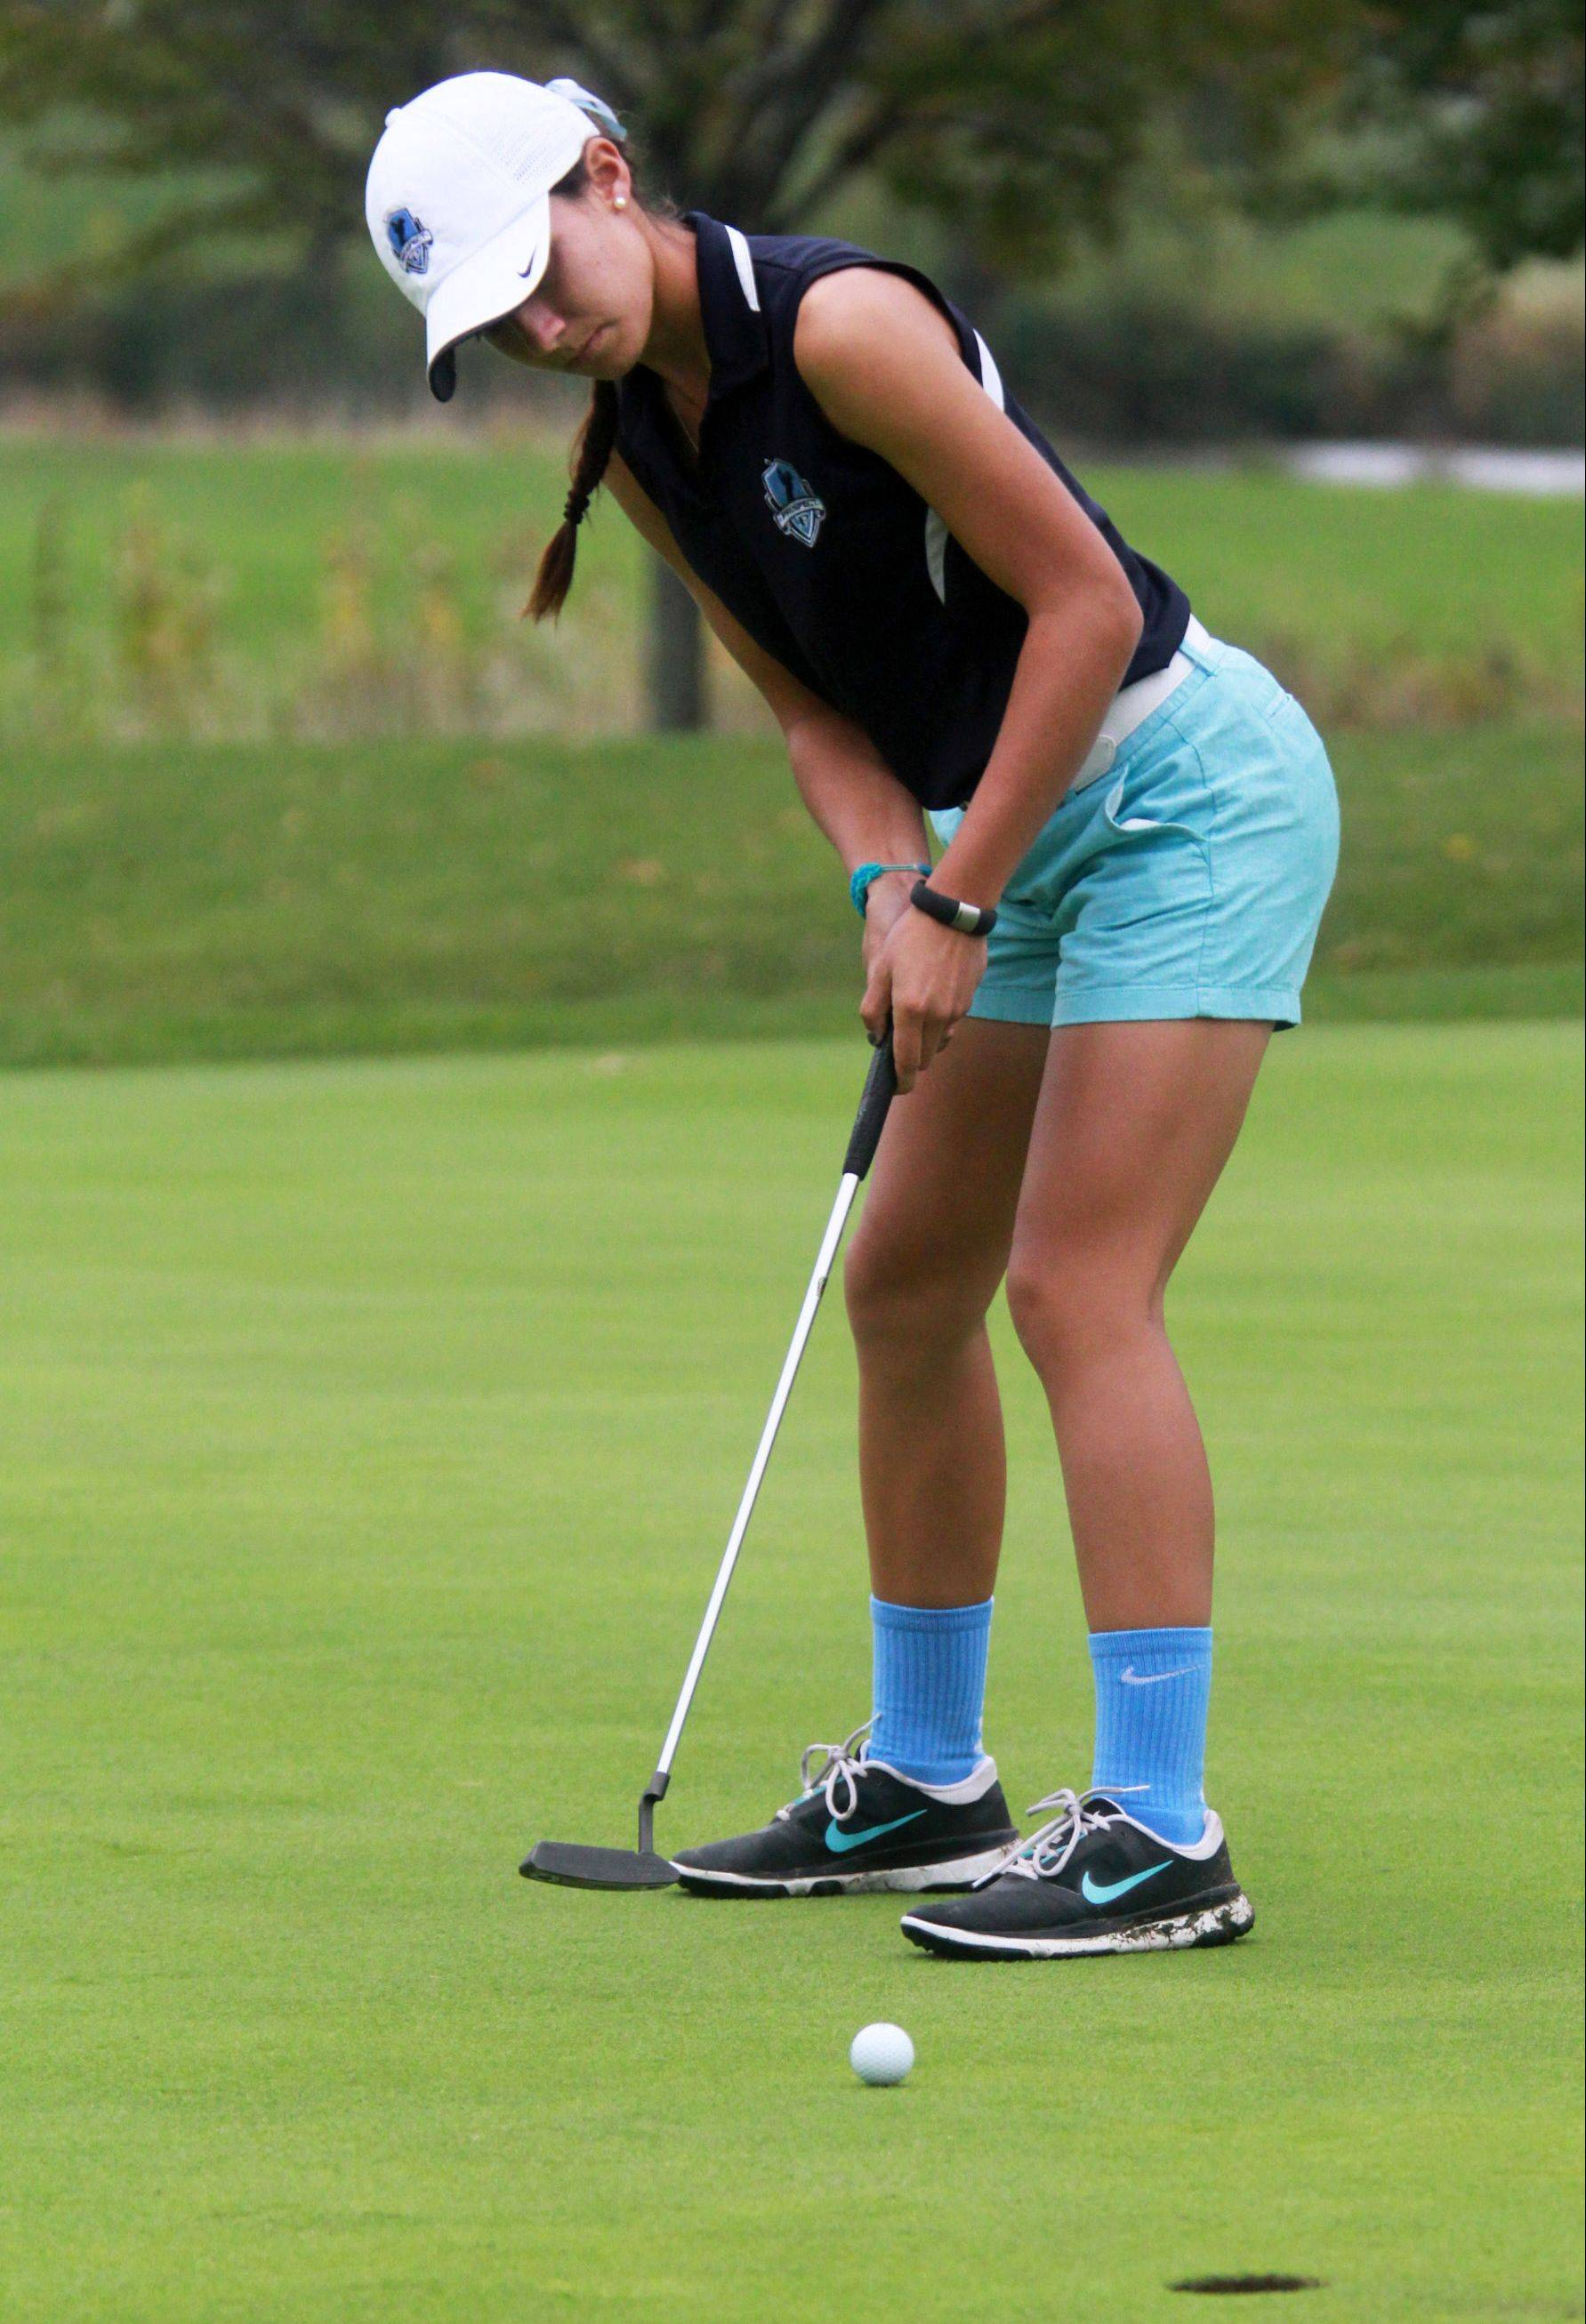 Prospect's Ally Scaccia putts on No. 9 at Fox Run Golf Course during her winning effort in Tuesday's Mid-Suburban League meet.